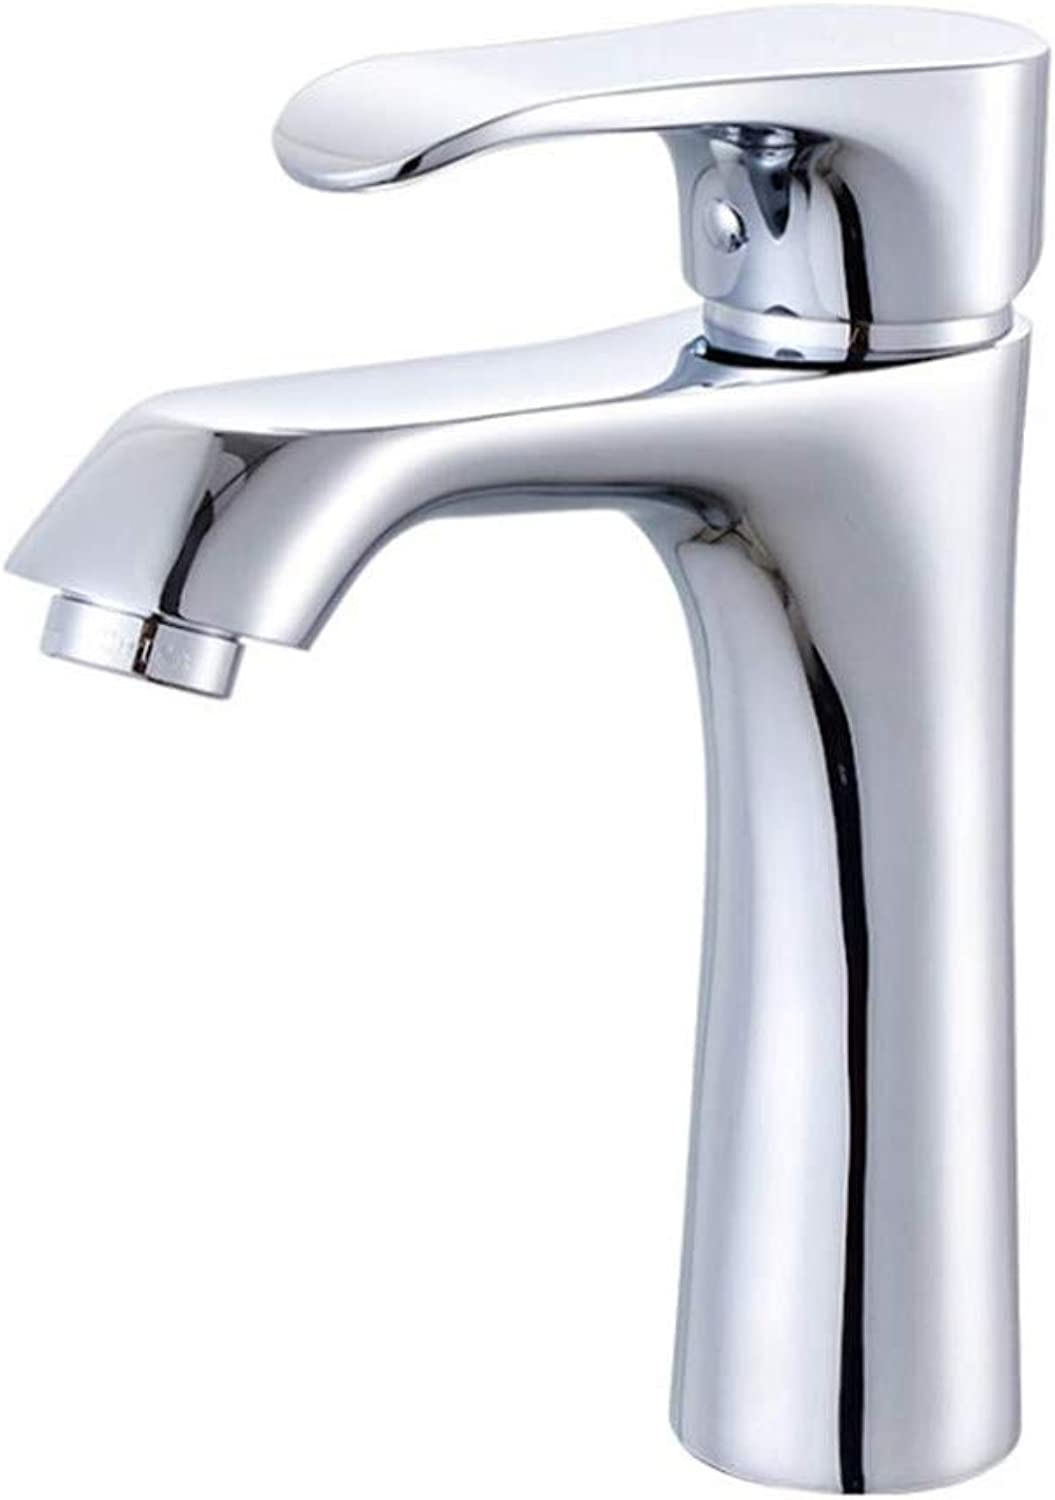 Water Tap Drinking Designer Archbathroom Copper Cold and Hot Washbasin Faucet Single-Hole Bathroom Cabinet Faucet